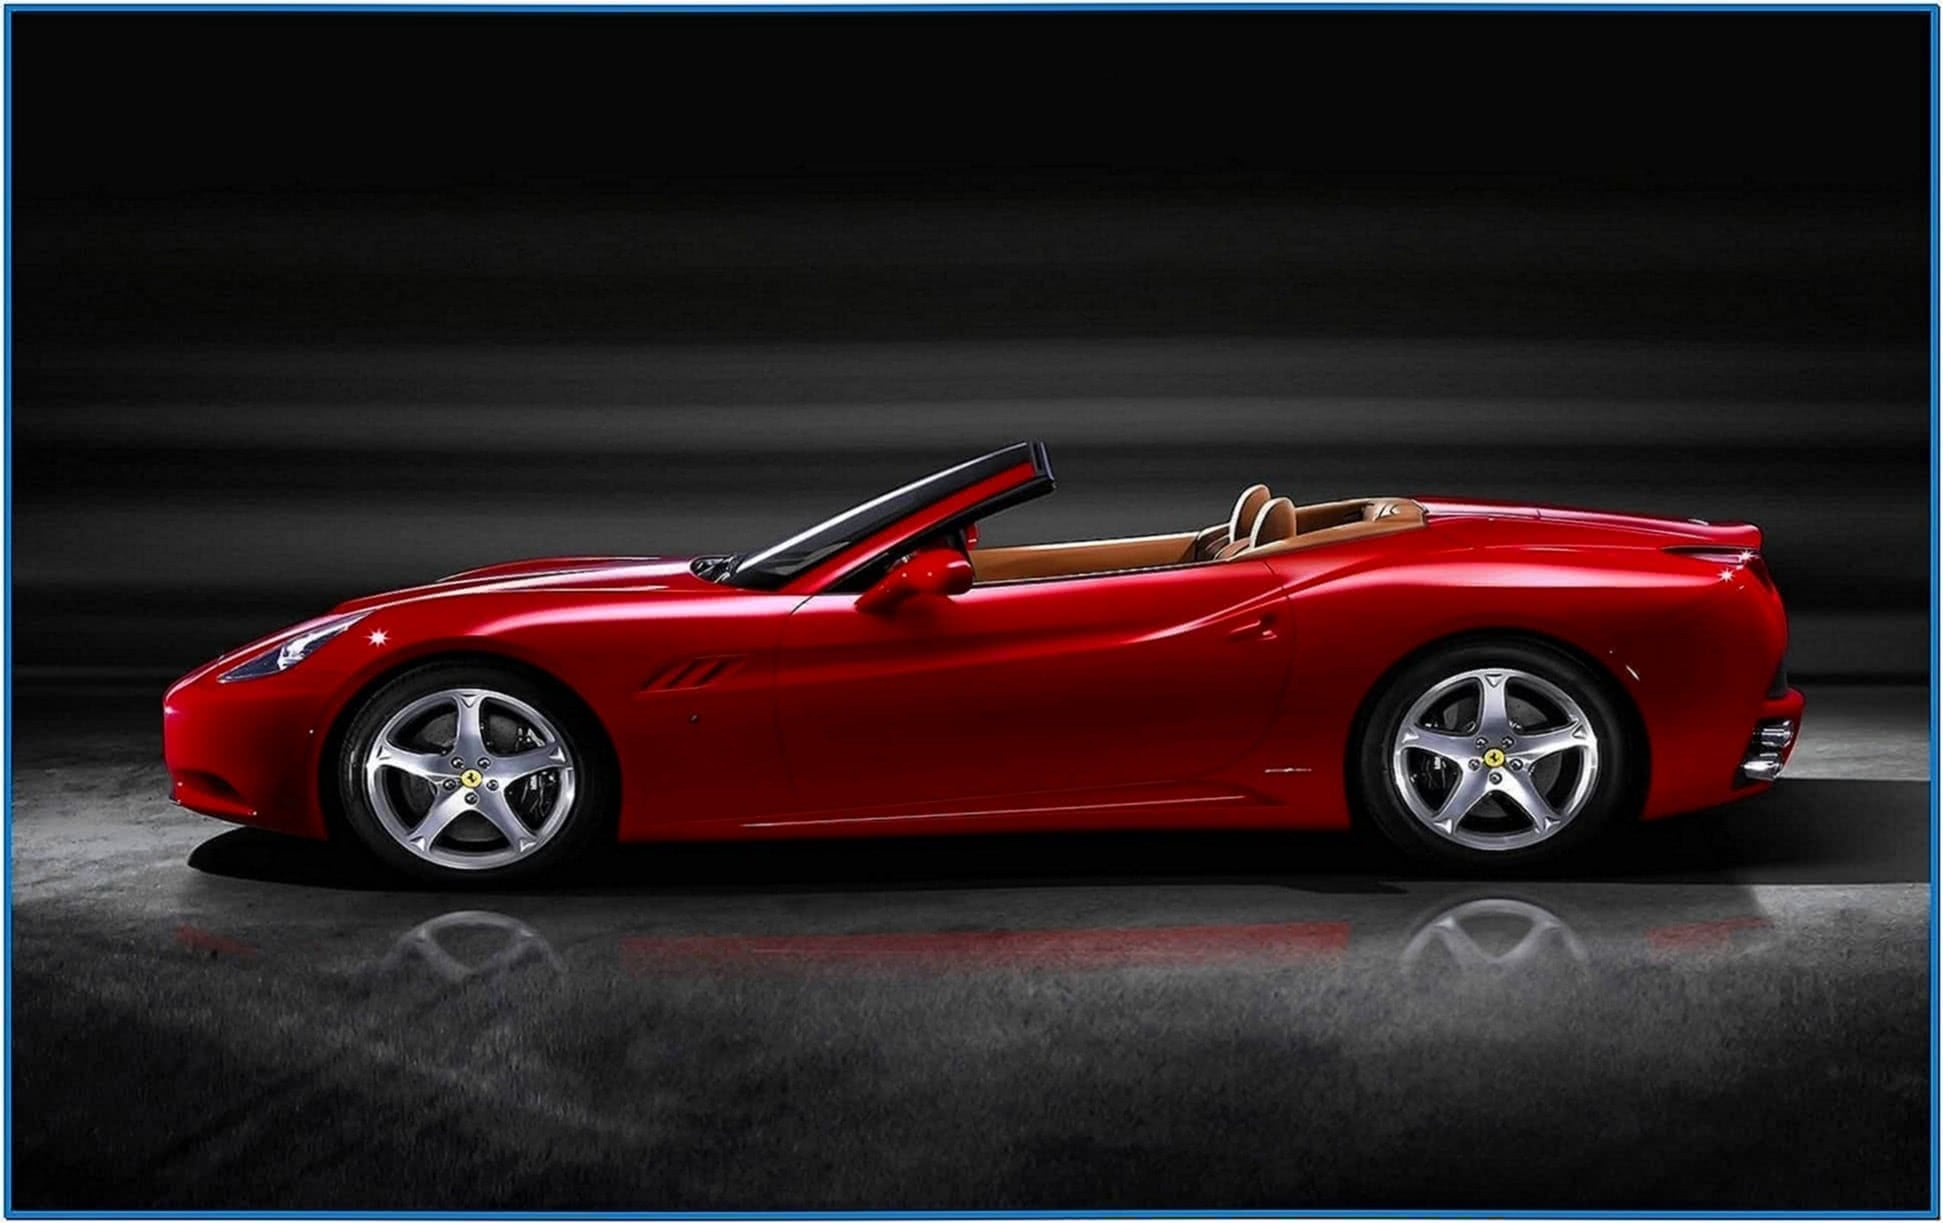 Ferrari Screensaver Calendar